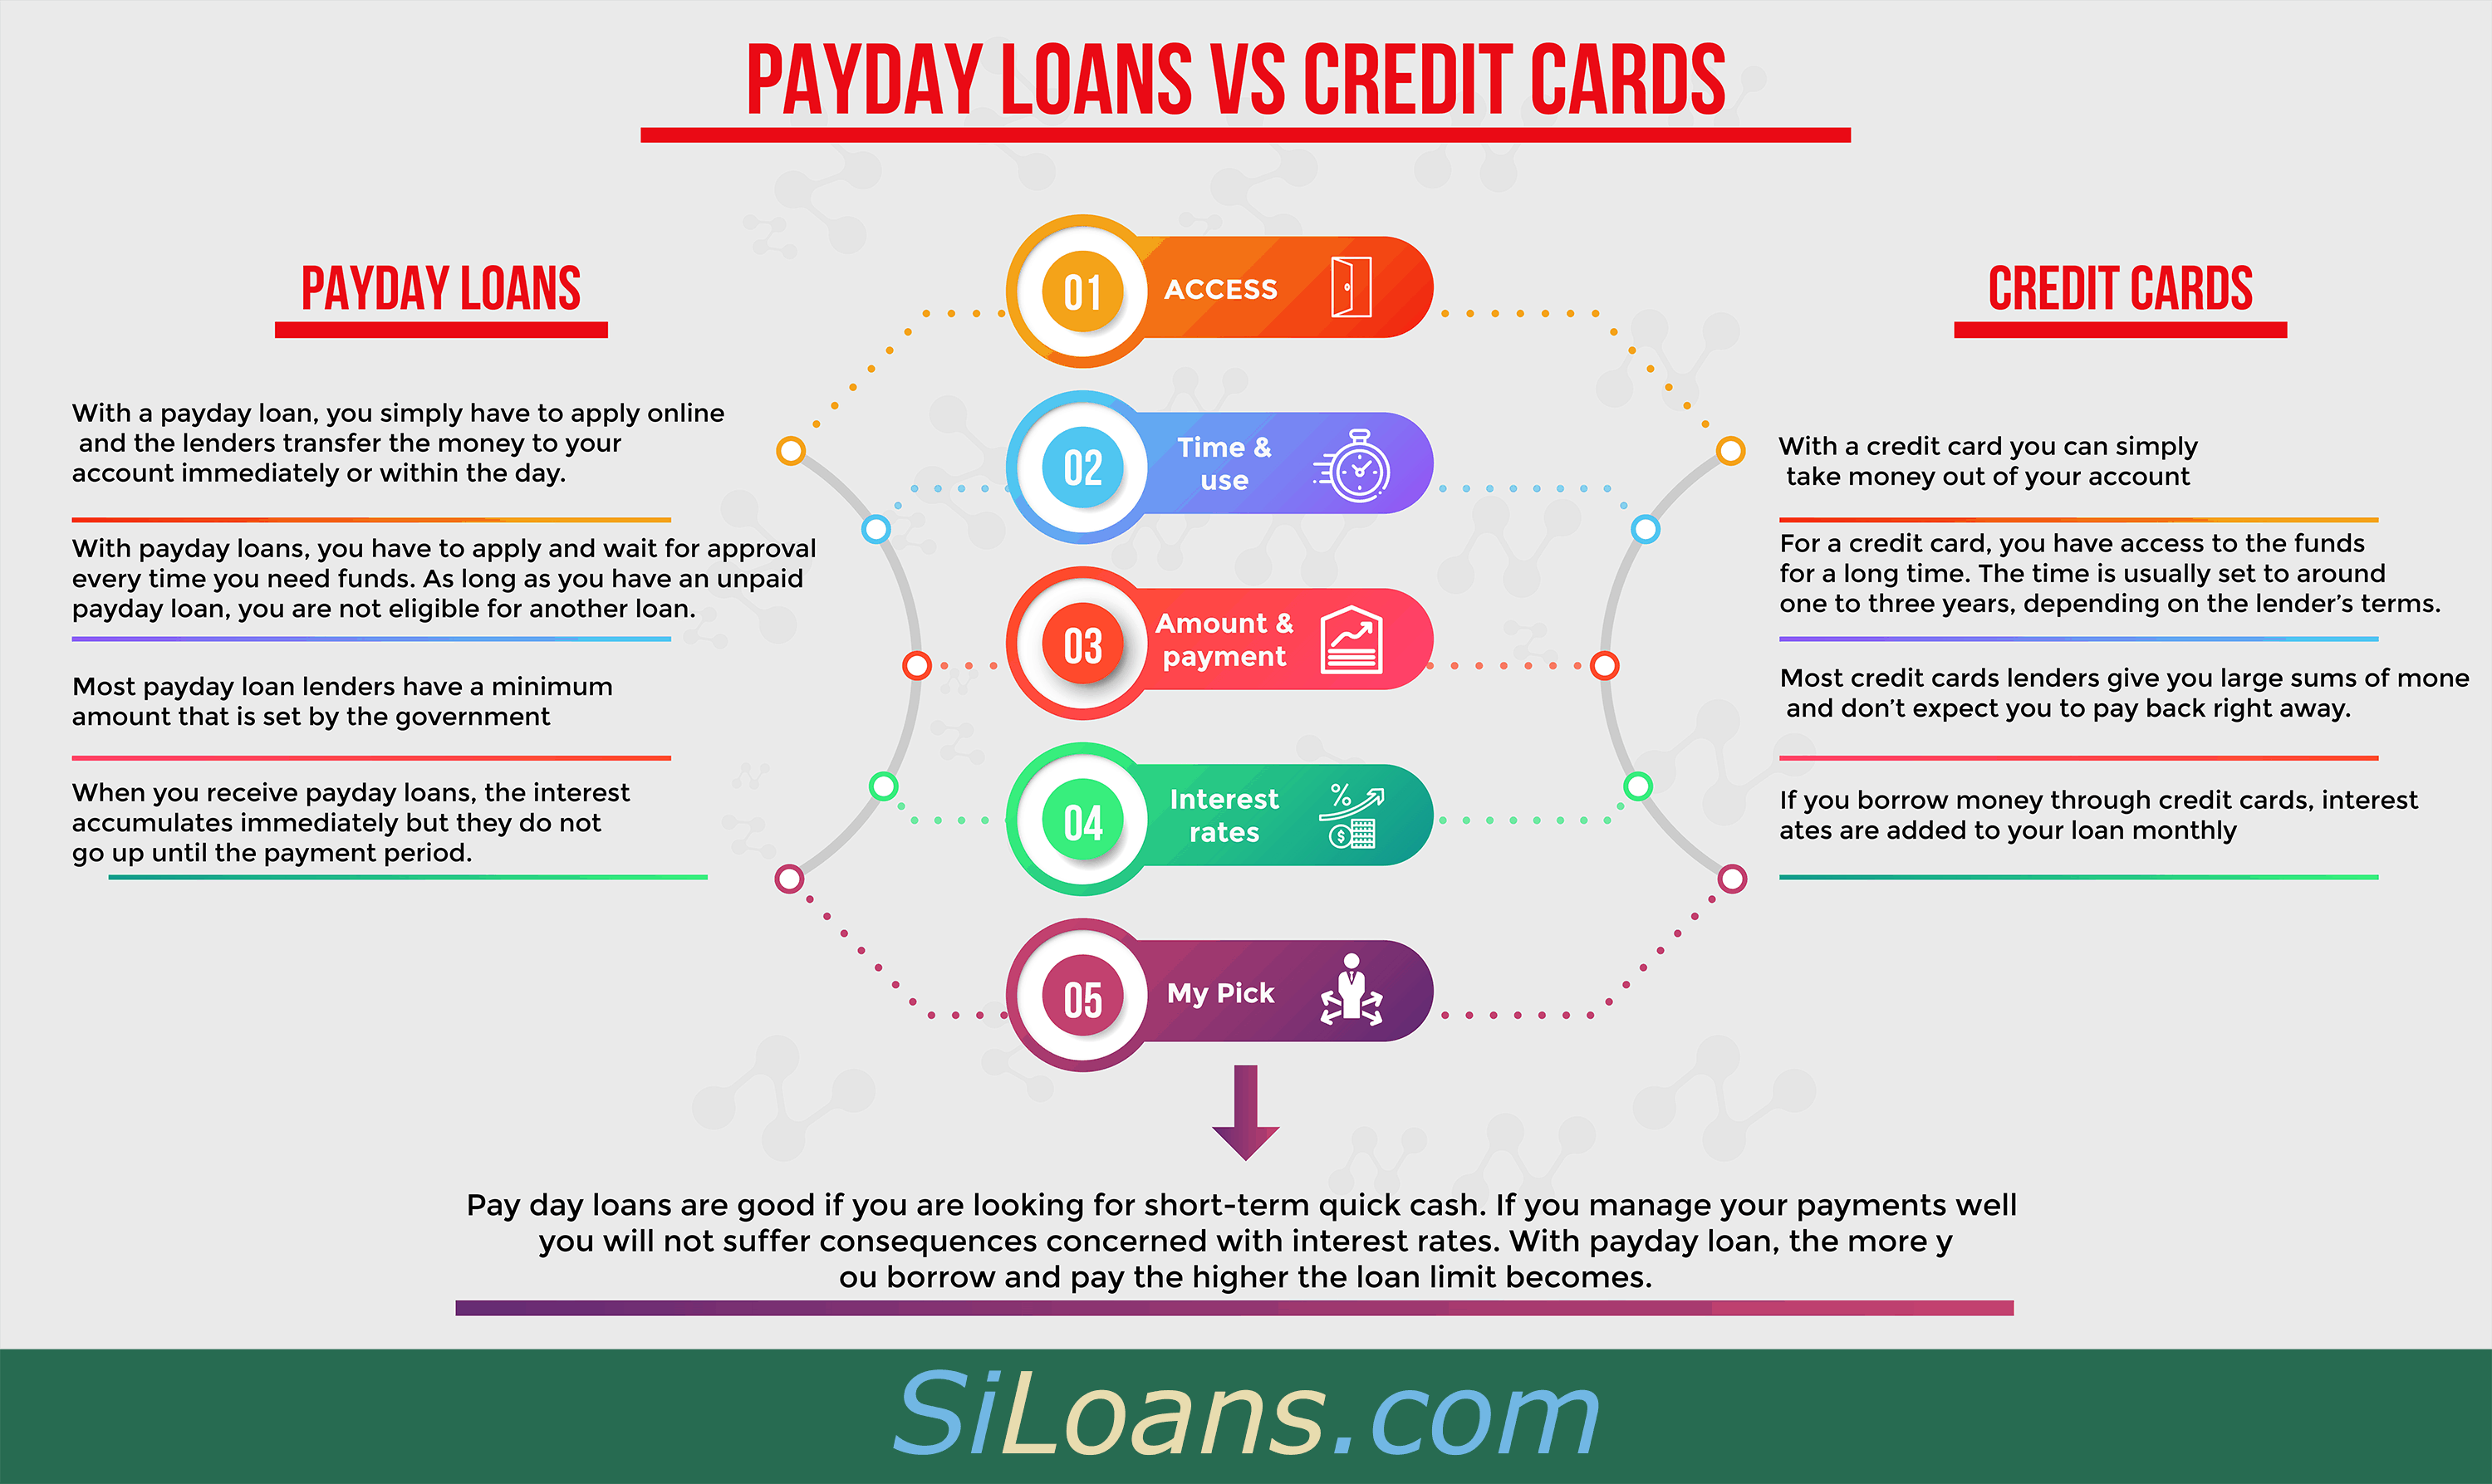 credit cards vs payday loans infographic